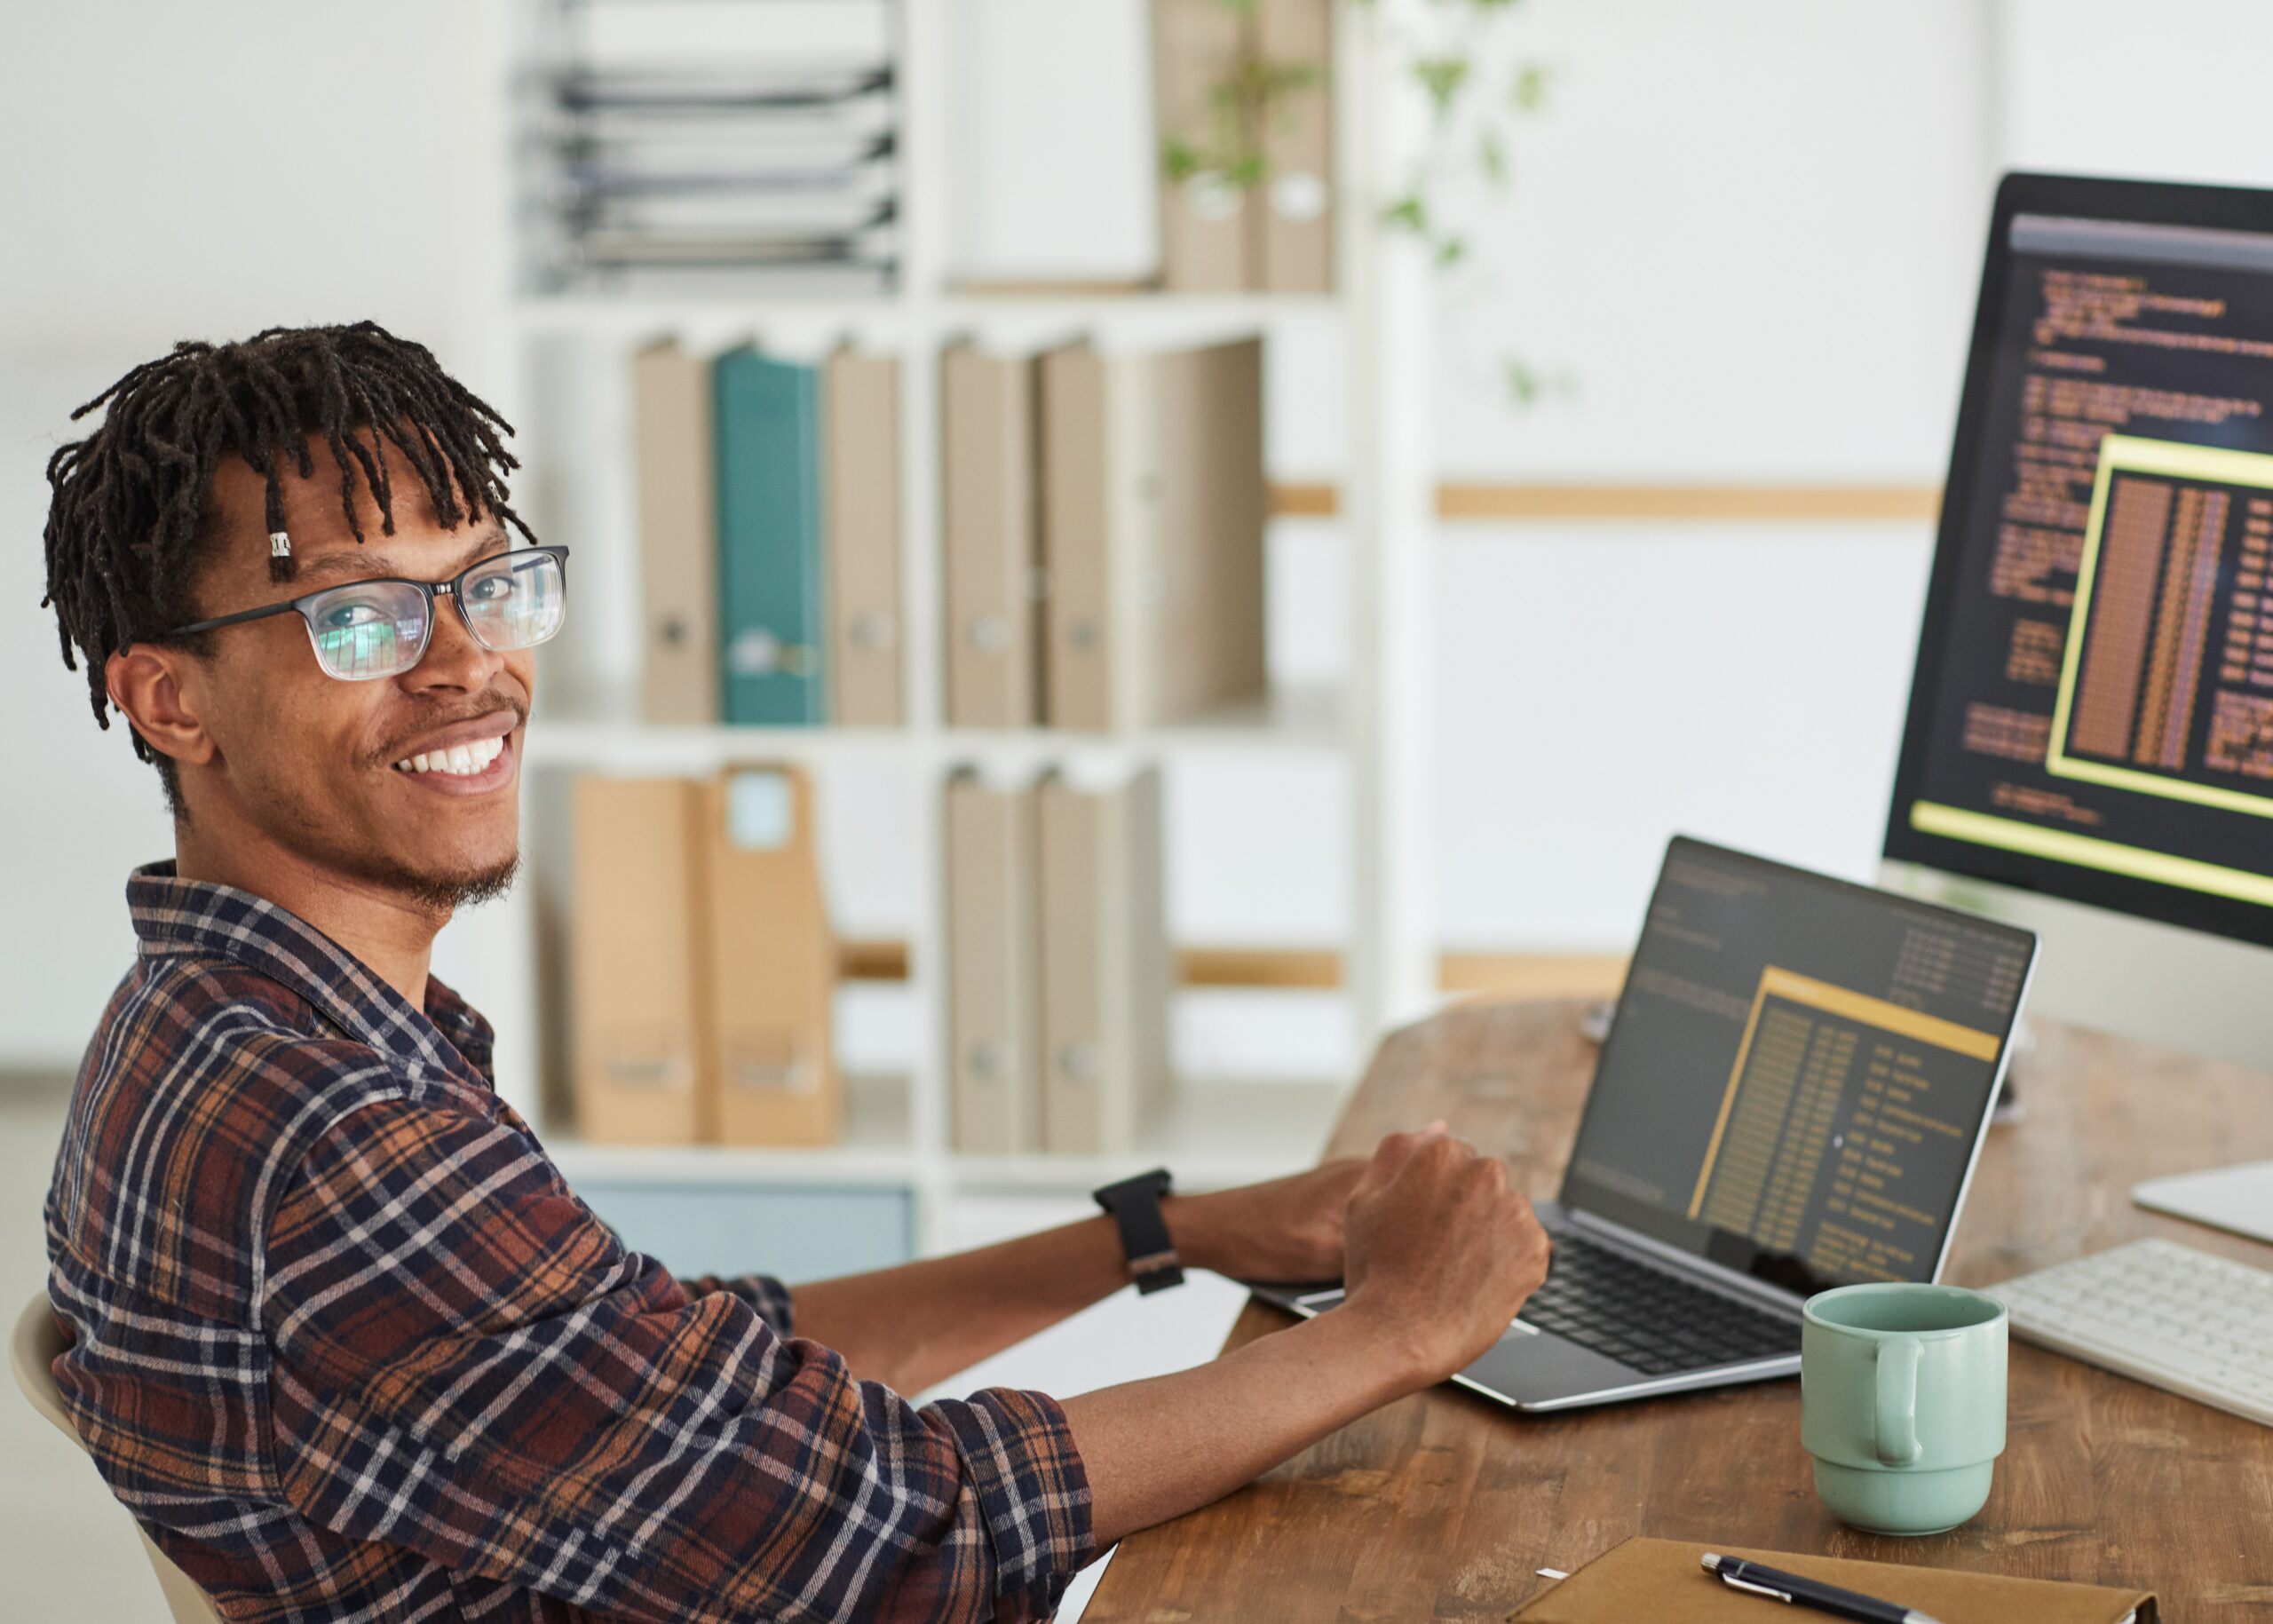 Portrait,Of,Smiling,African-american,It,Developer,Looking,At,Camera,While